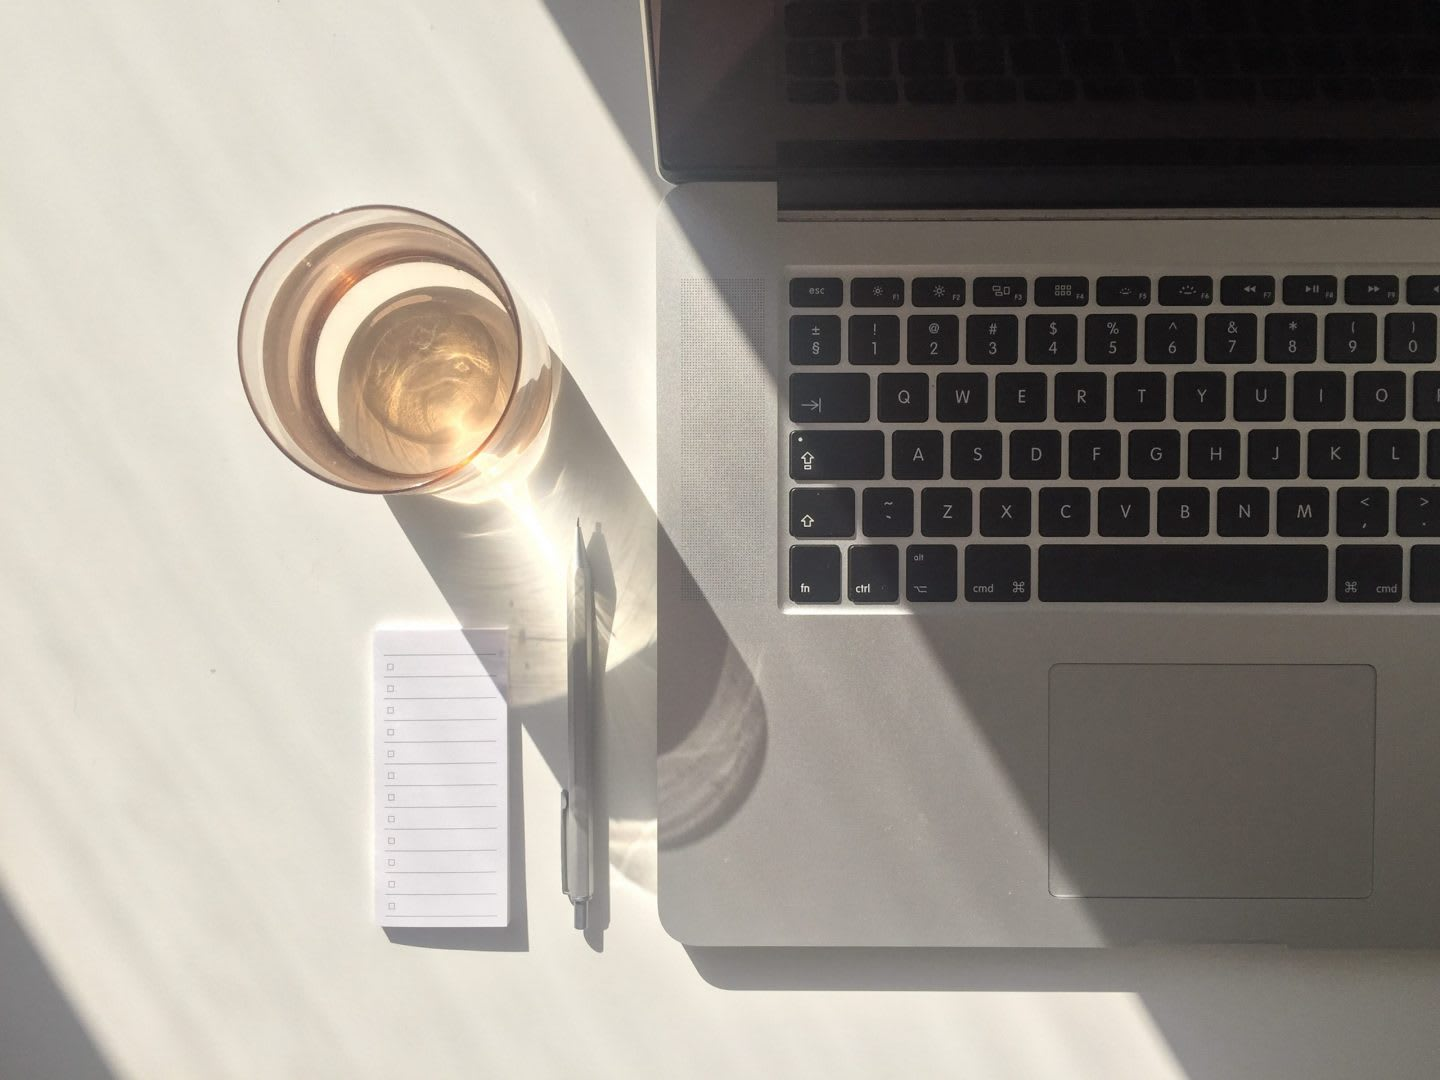 Desk with sunlight with laptop, glass of water and stationary, hydration, work, laptop, notepad